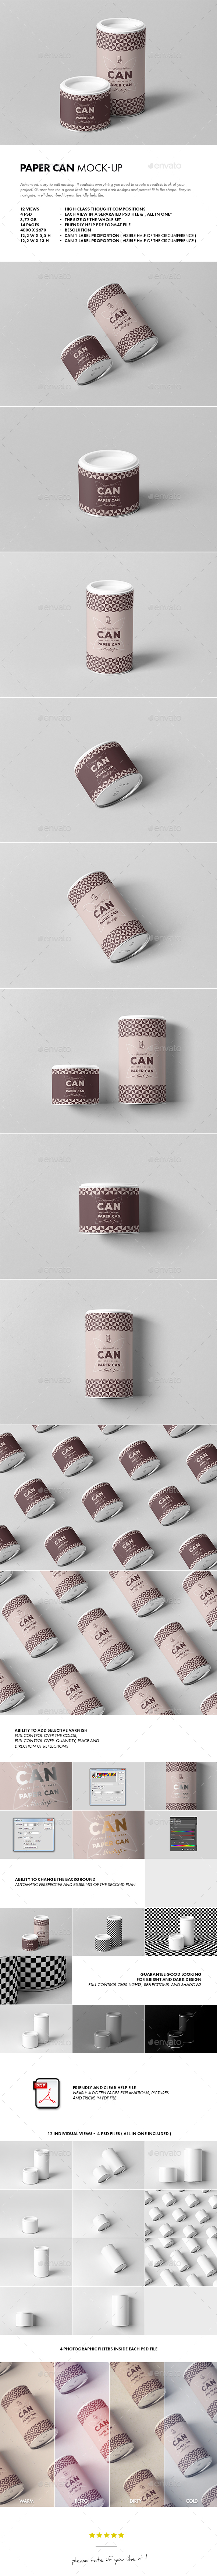 Paper Can Mock-up - Food and Drink Packaging